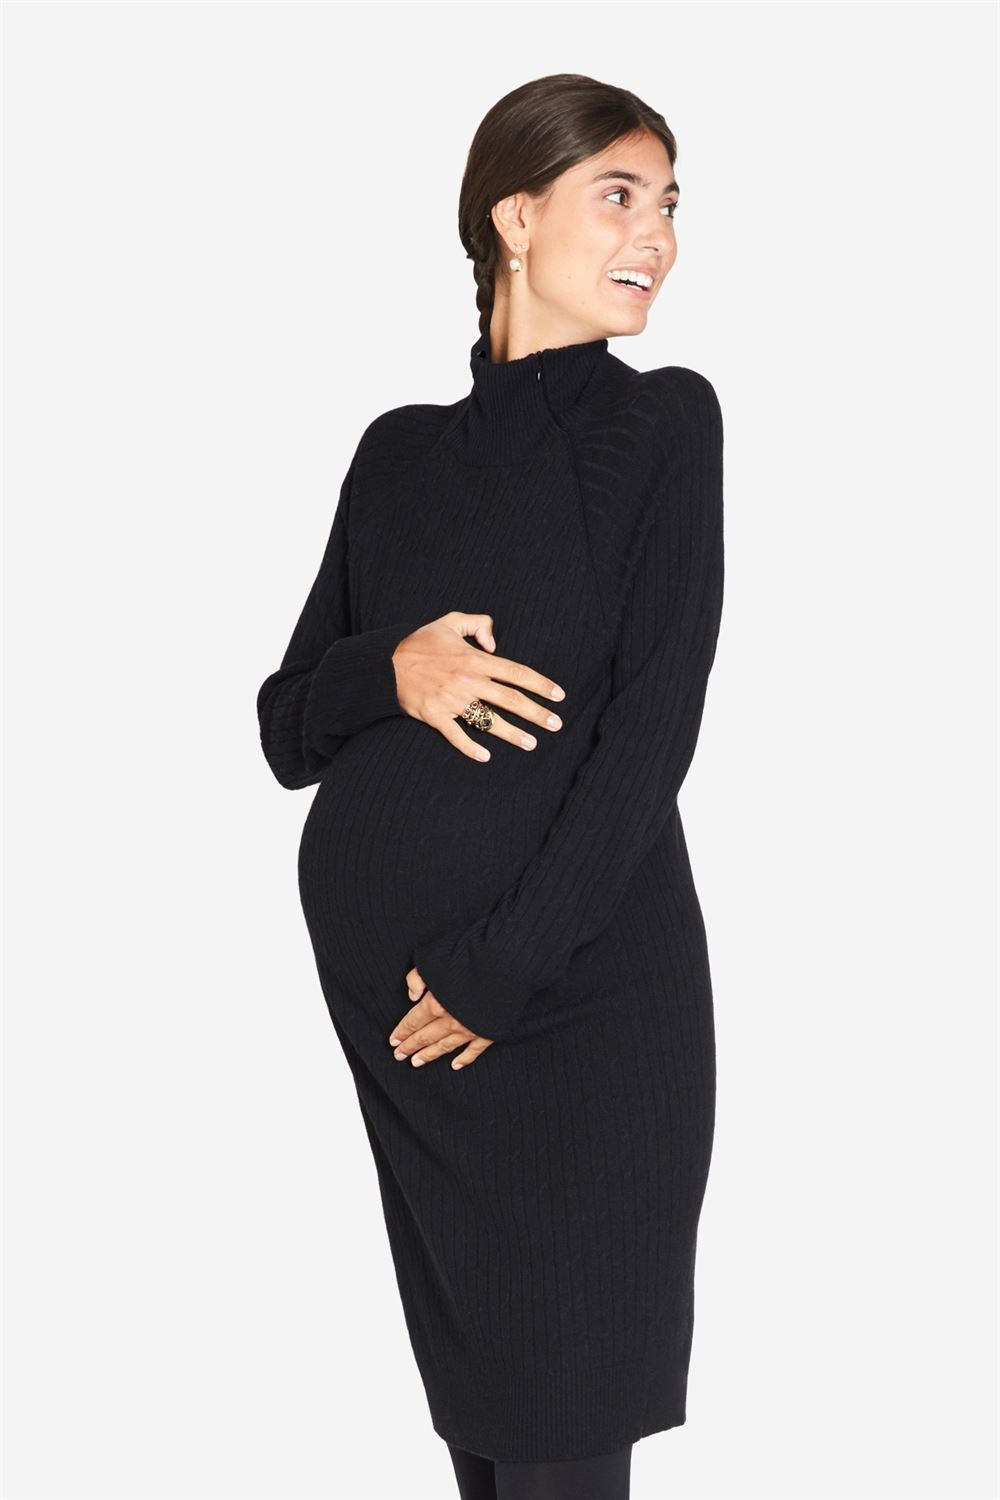 Black High-necked nursing dress in cable knit - maternity